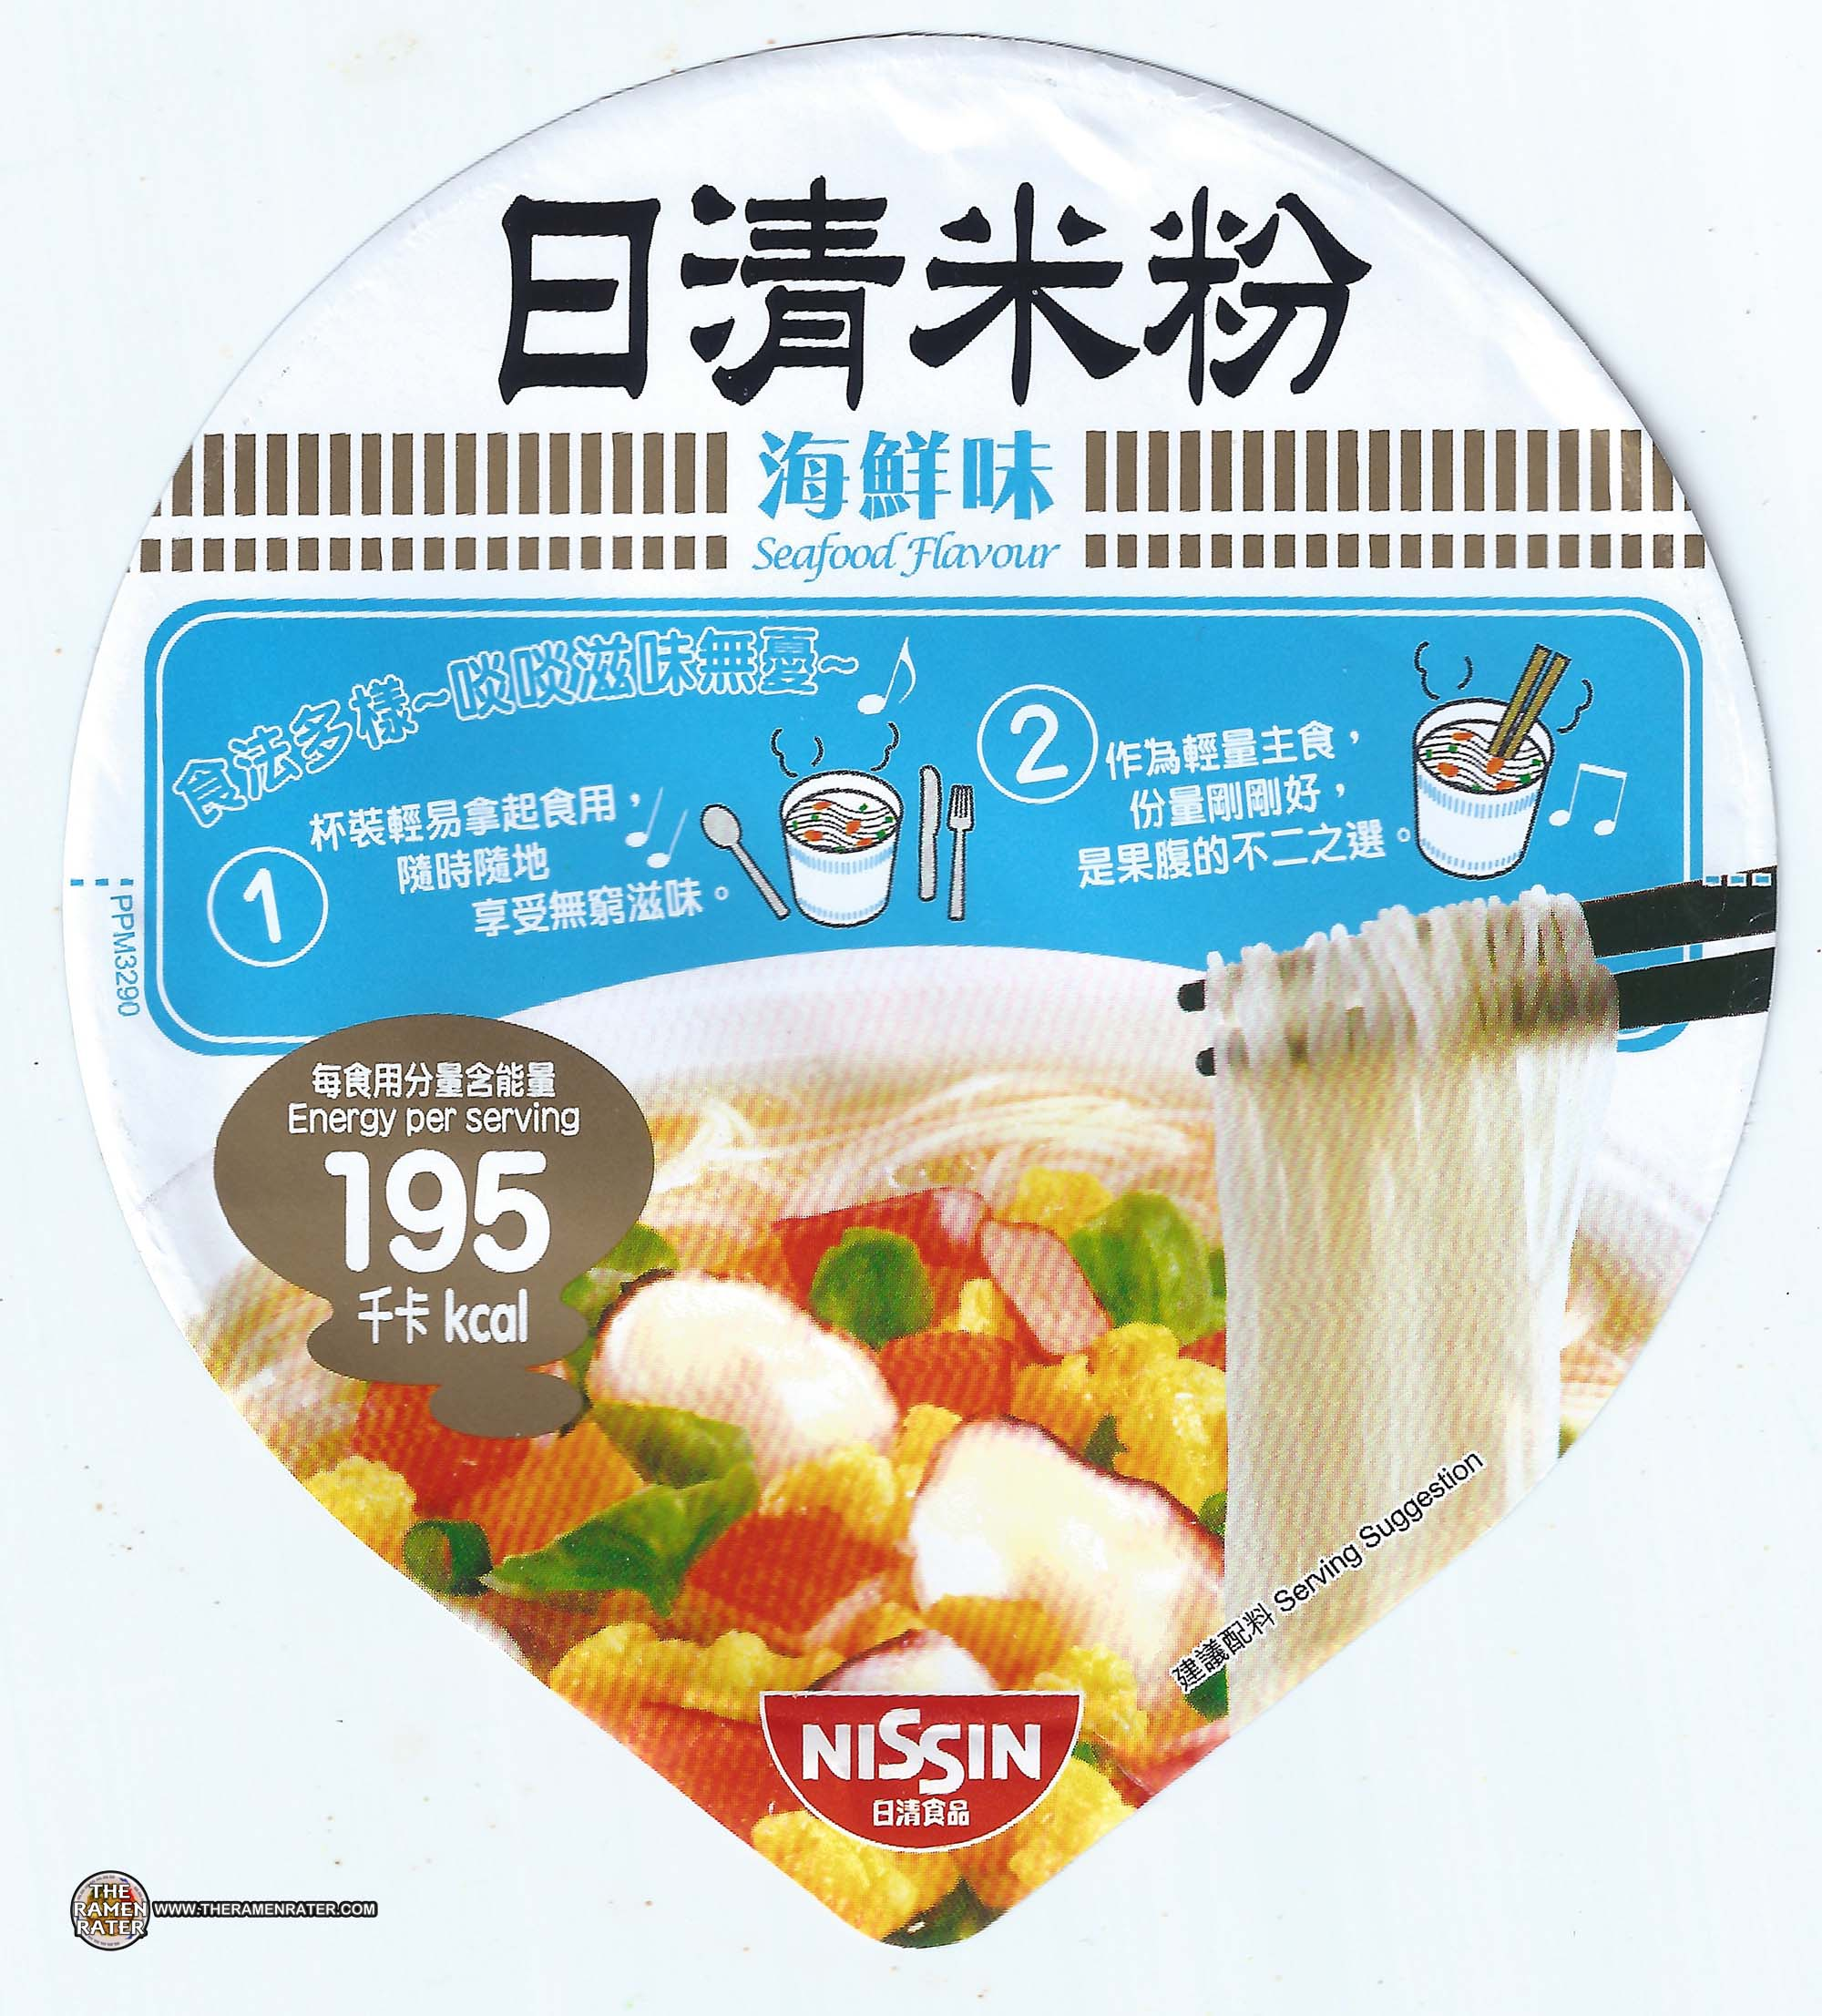 2425: Nissin Seafood Flavour Rice Vermicelli - The Ramen Rater